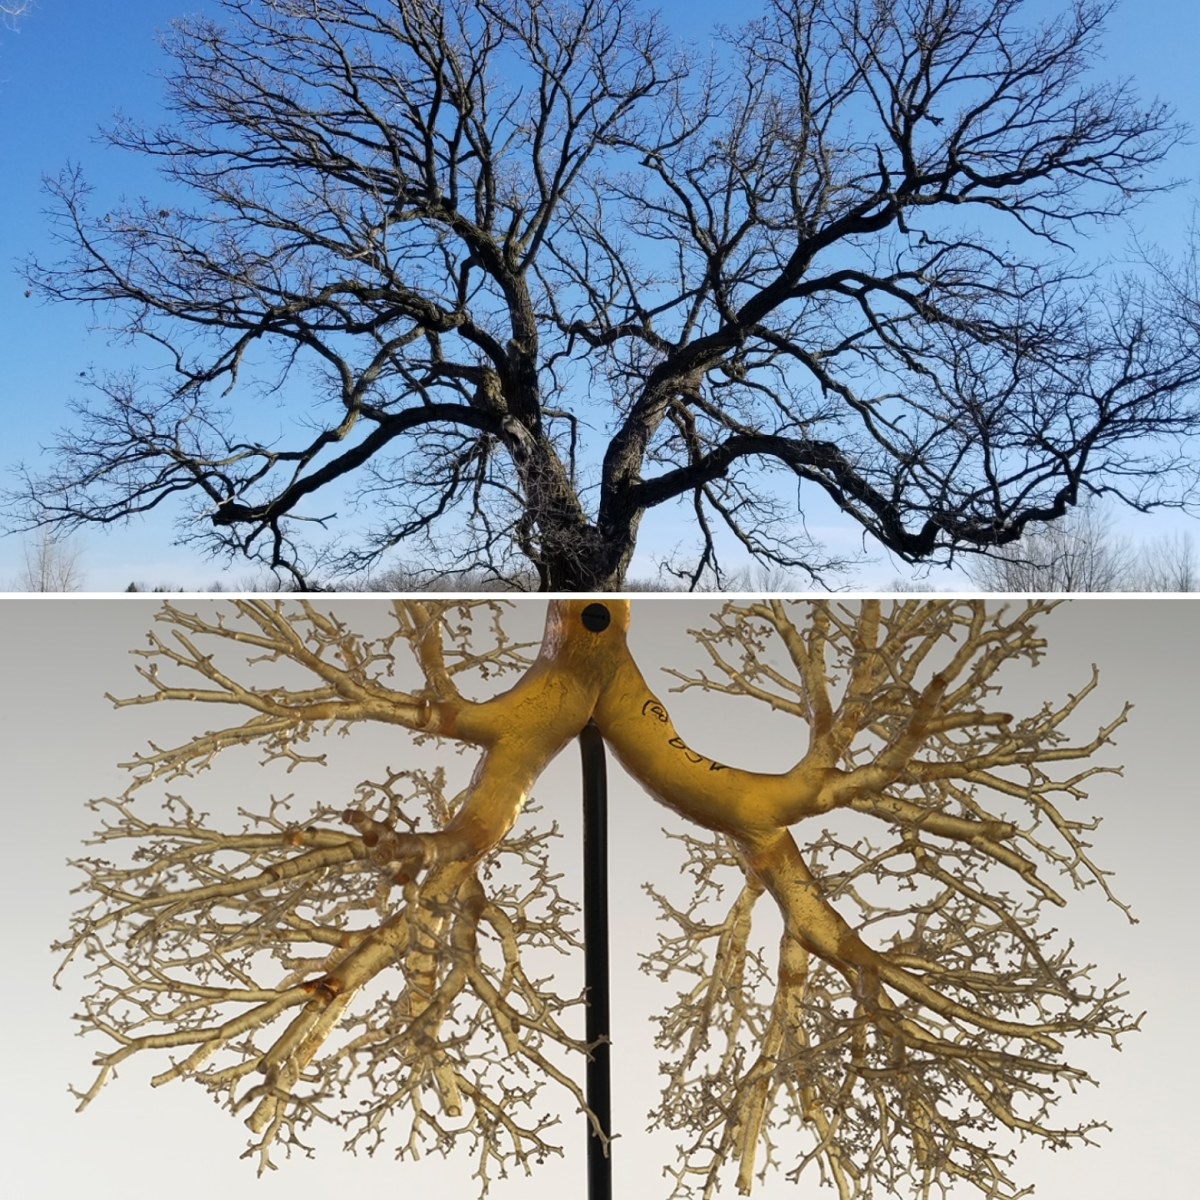 A tree and lung bronchials demonstrating the life giving properties of trees. Trees give off the oxygen that our lungs receive, giving life to our bodies.